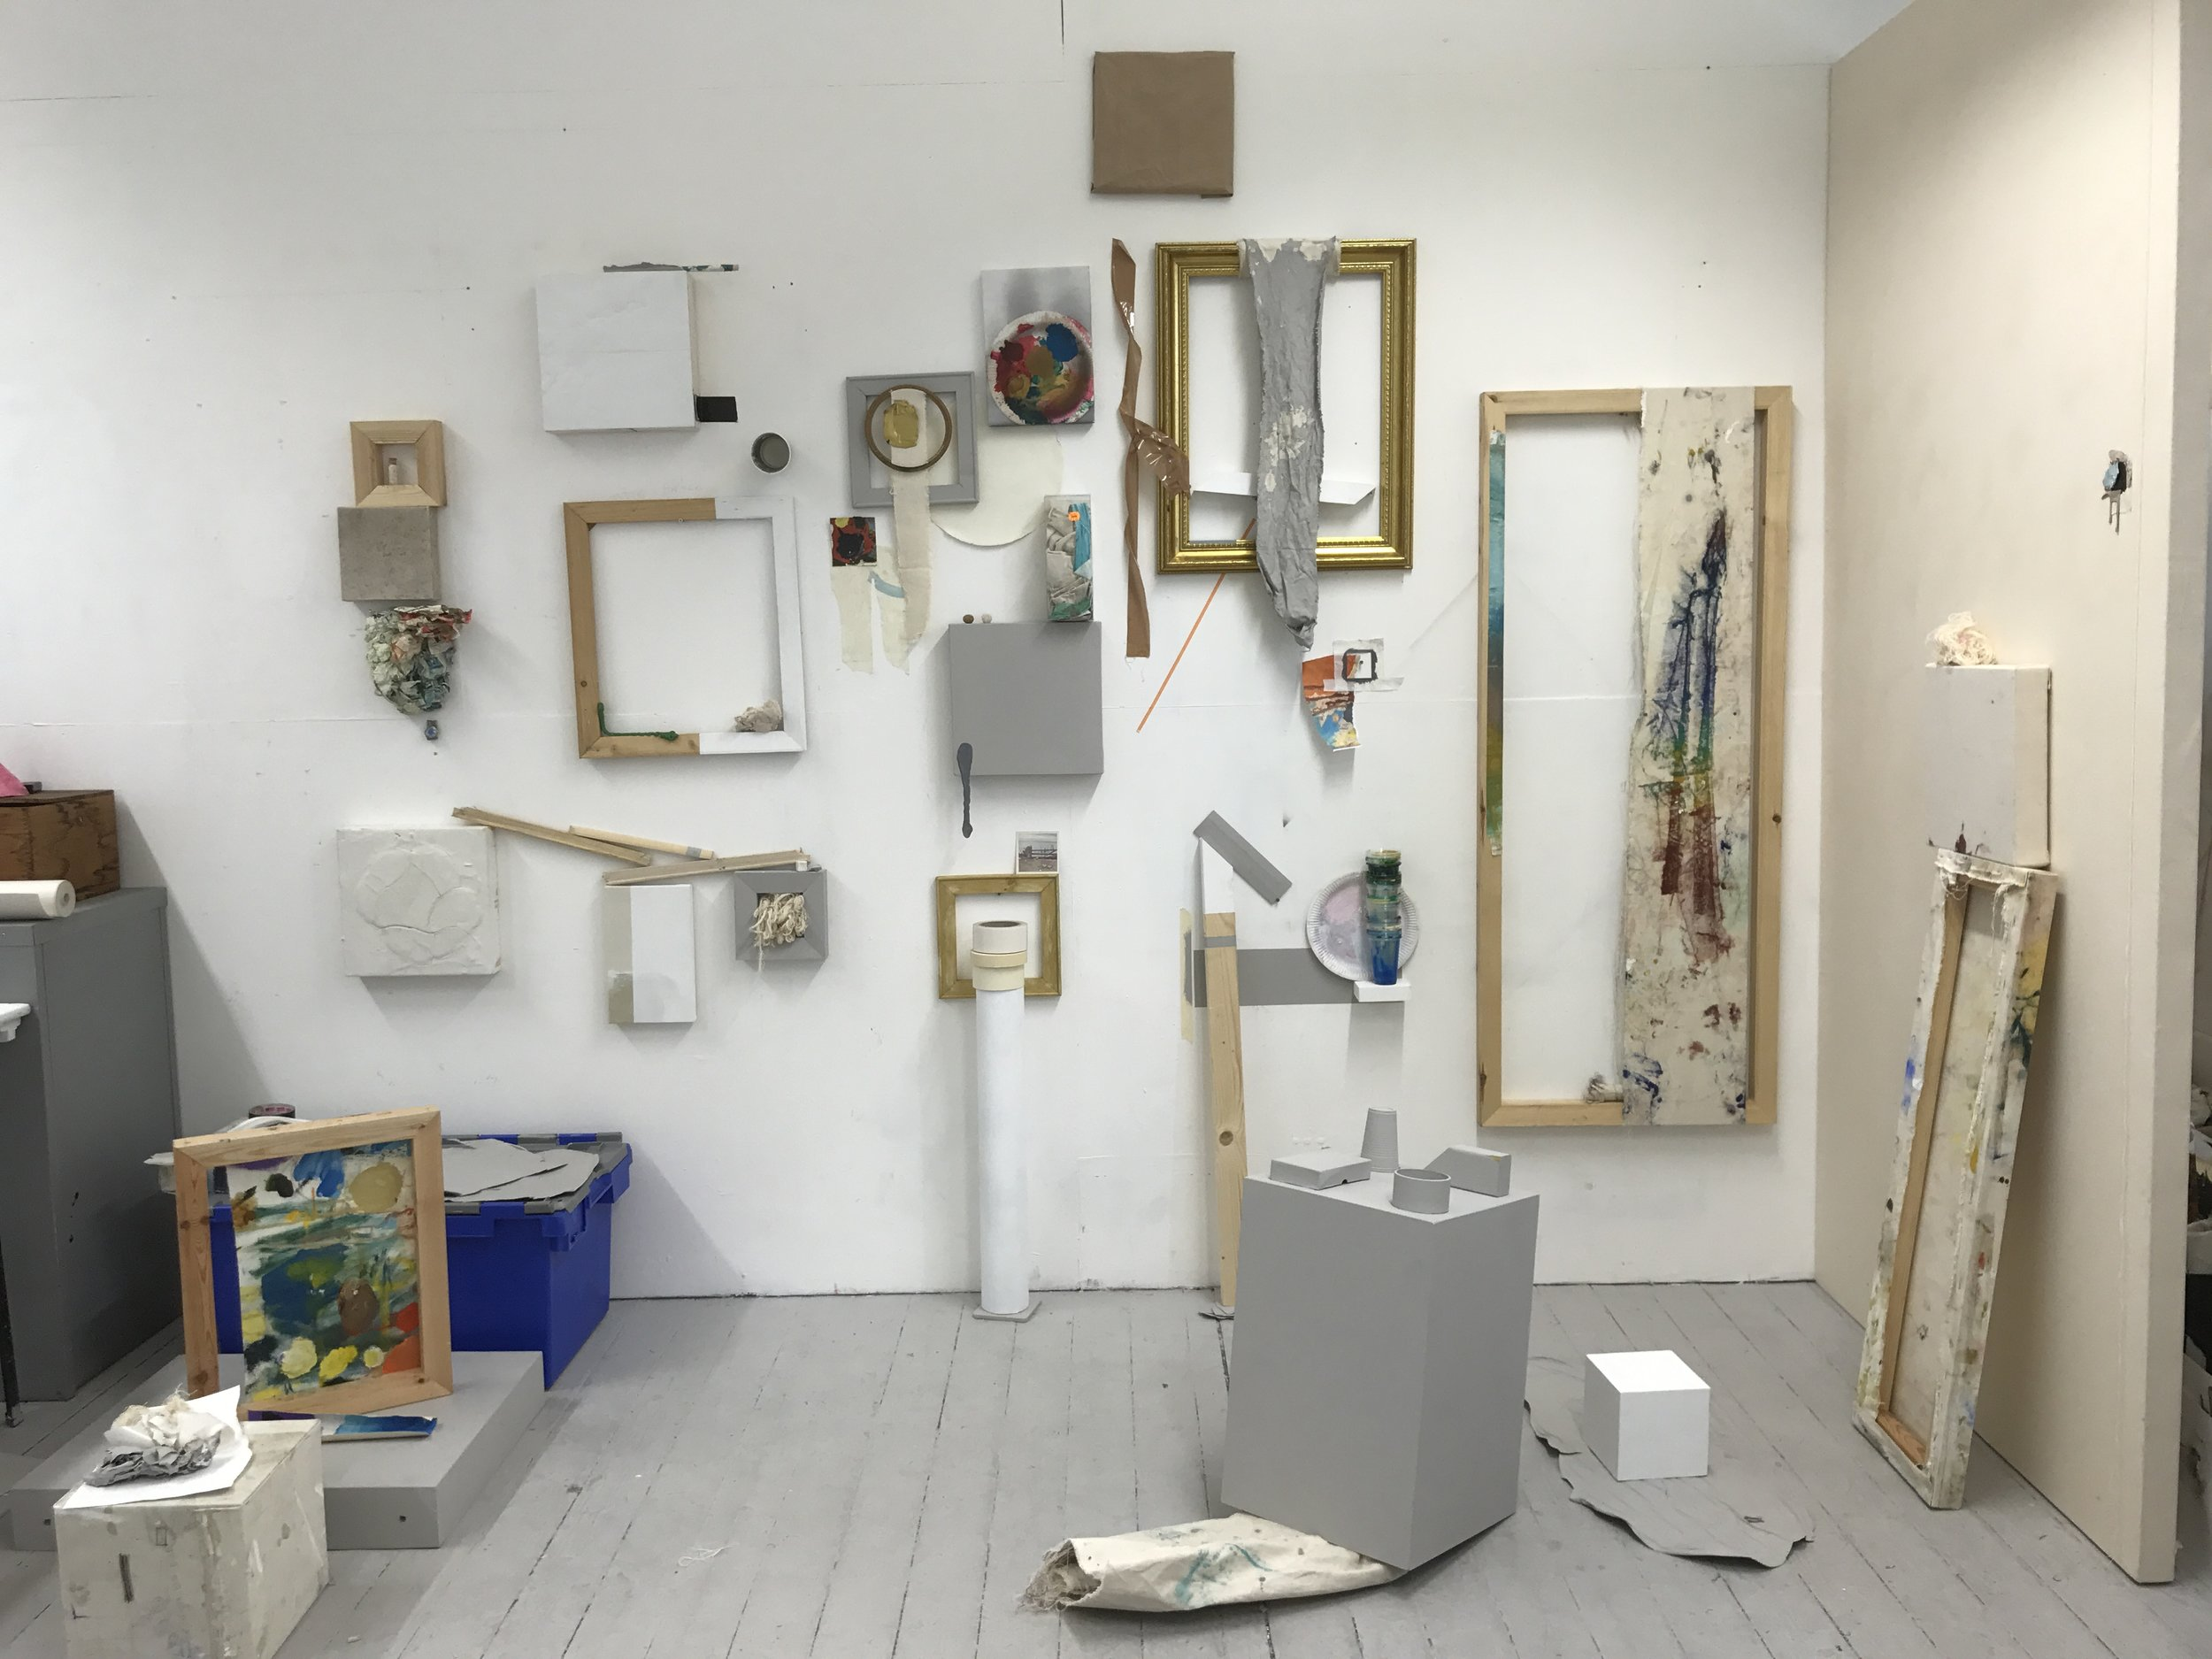 Ally McGinn (2017) [Studio documentation].  Studio View - End of week 5. The works on the wall are beginning to connect. Balance is still a keen interest.